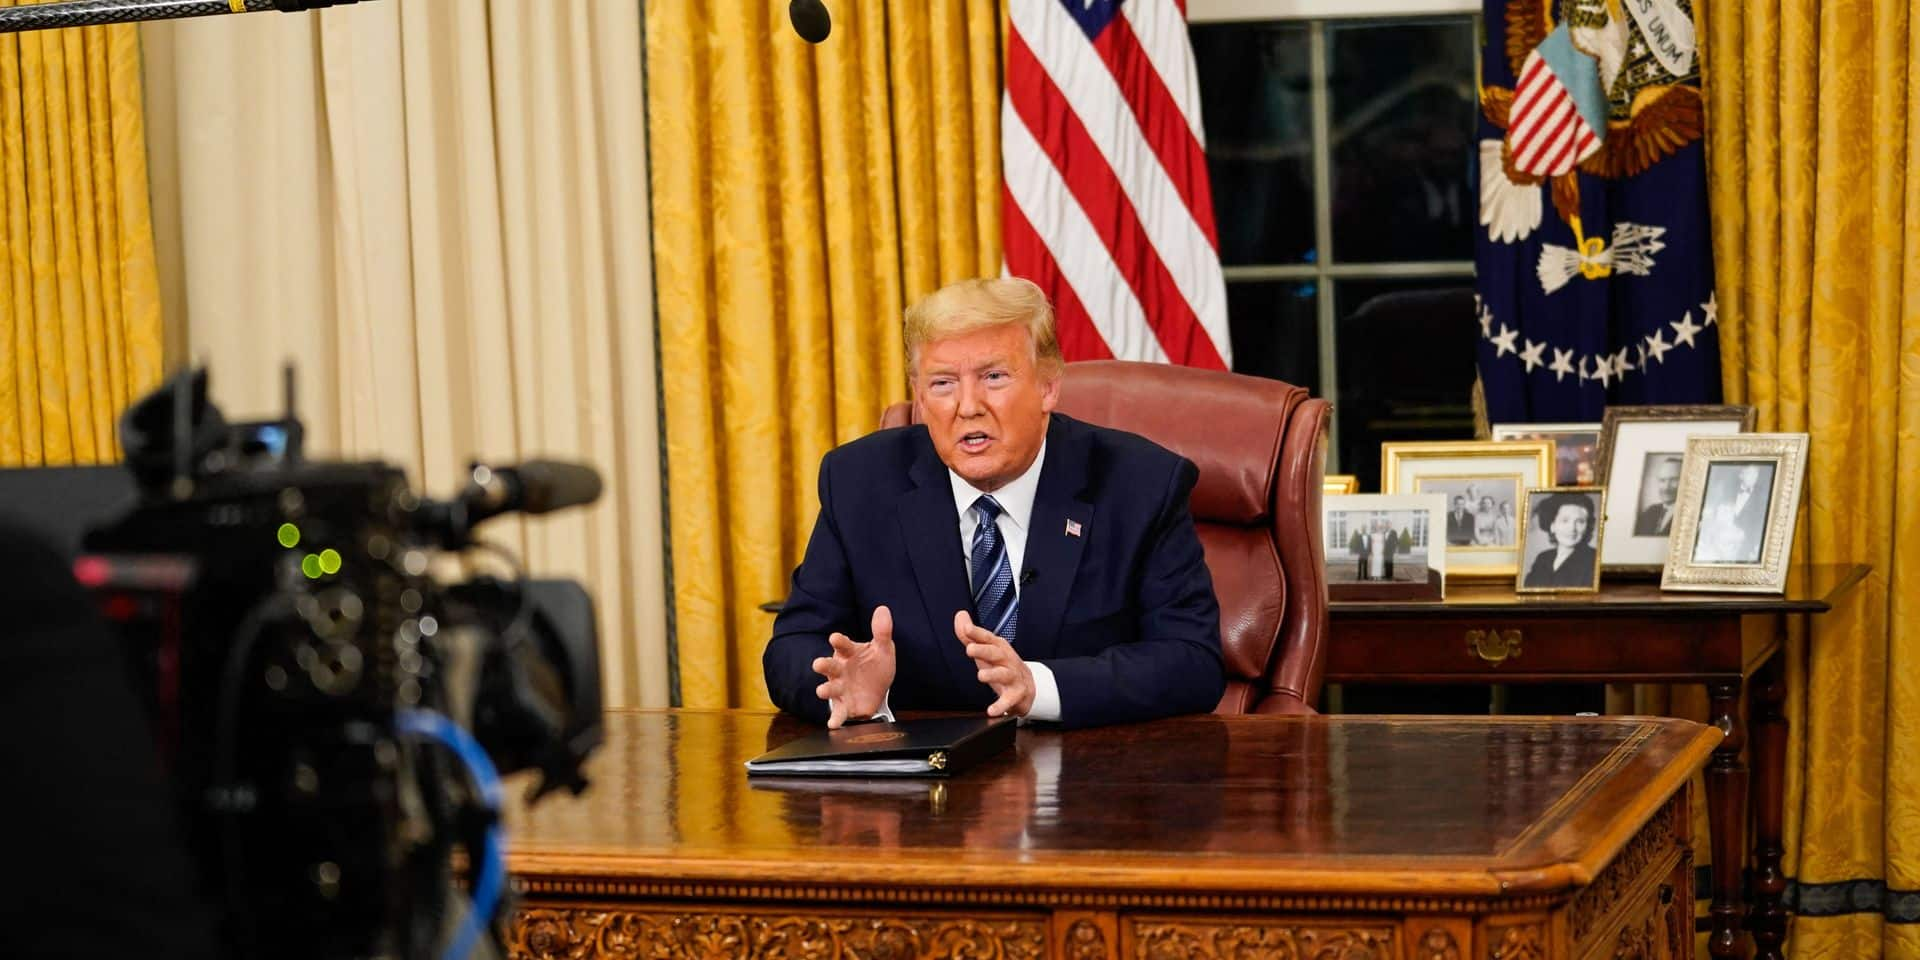 President Trump Addresses The Nation About The Widening Coronavirus Crisis - DC